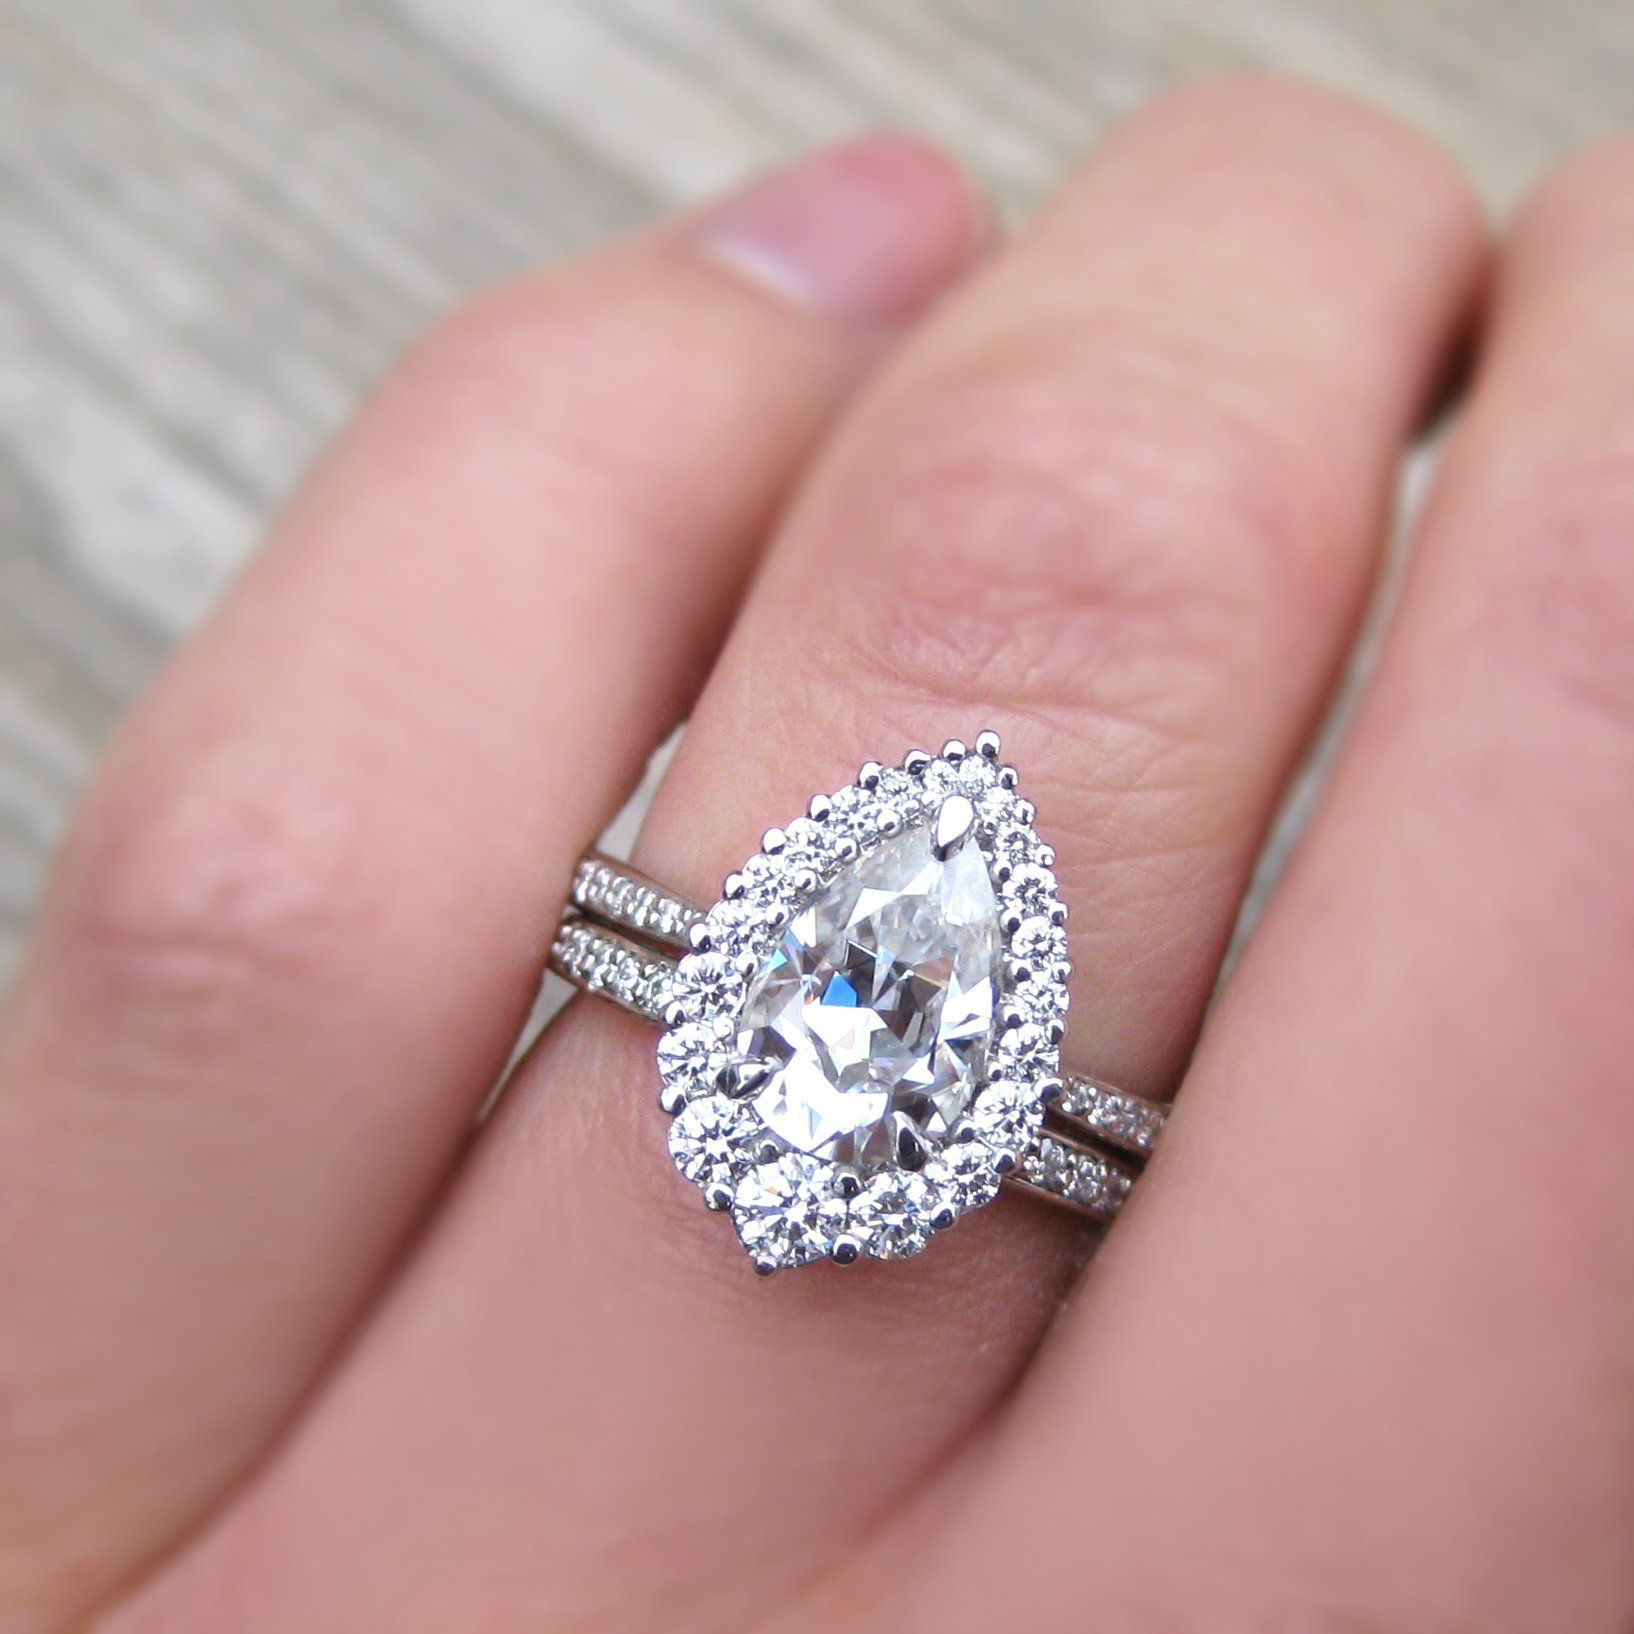 Pear Halo Engagement Ring with Pavé Diamond Band, by Kristin Coffin ...